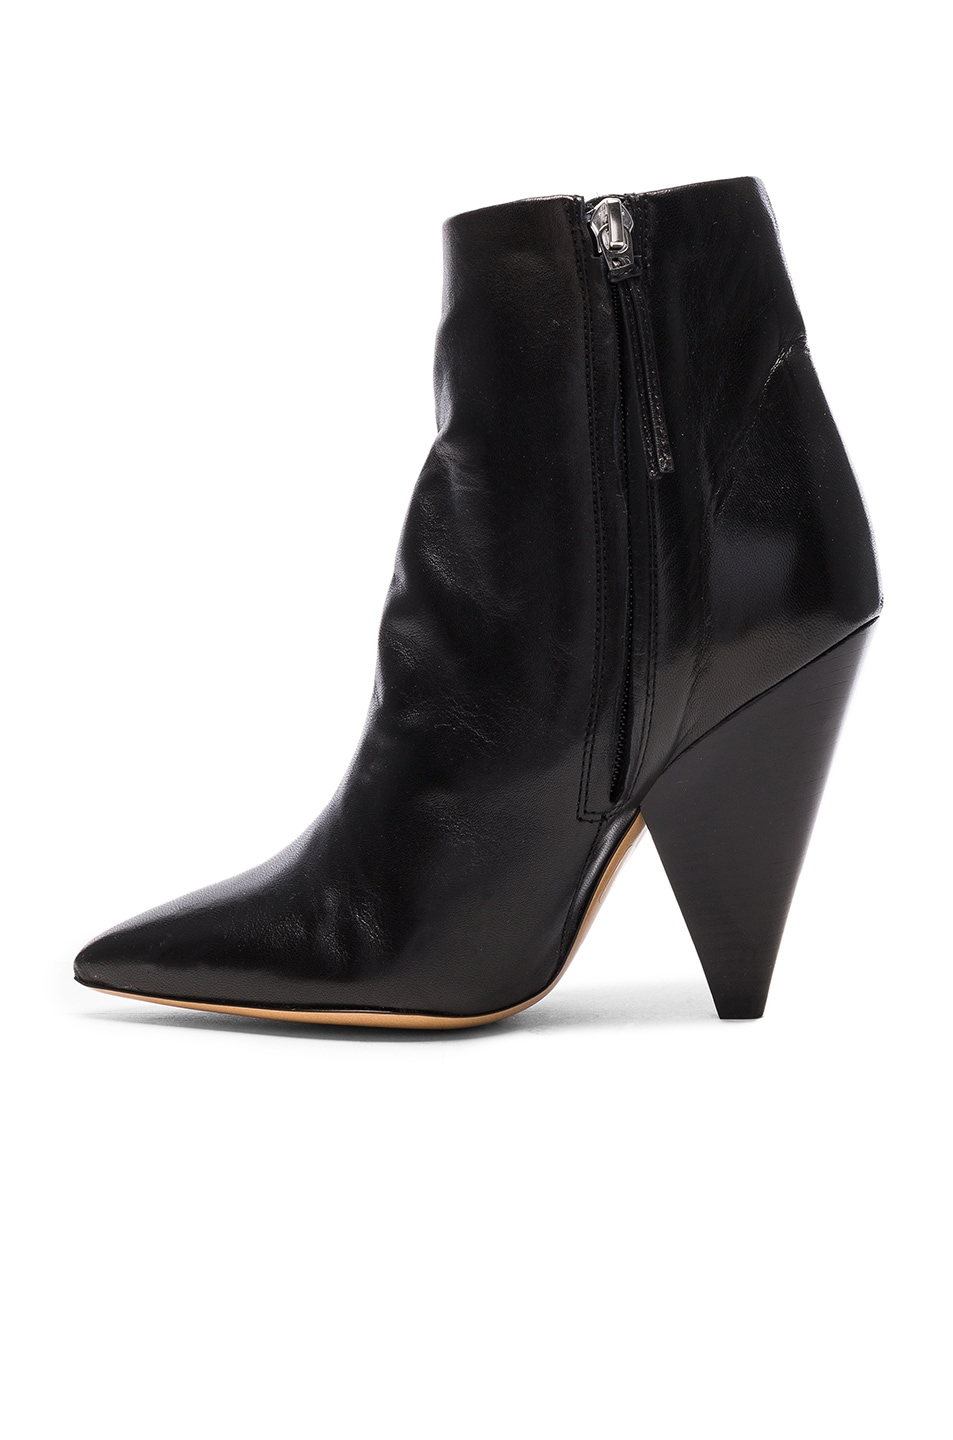 Image 5 of Isabel Marant Leather Leydoni Booties in Black